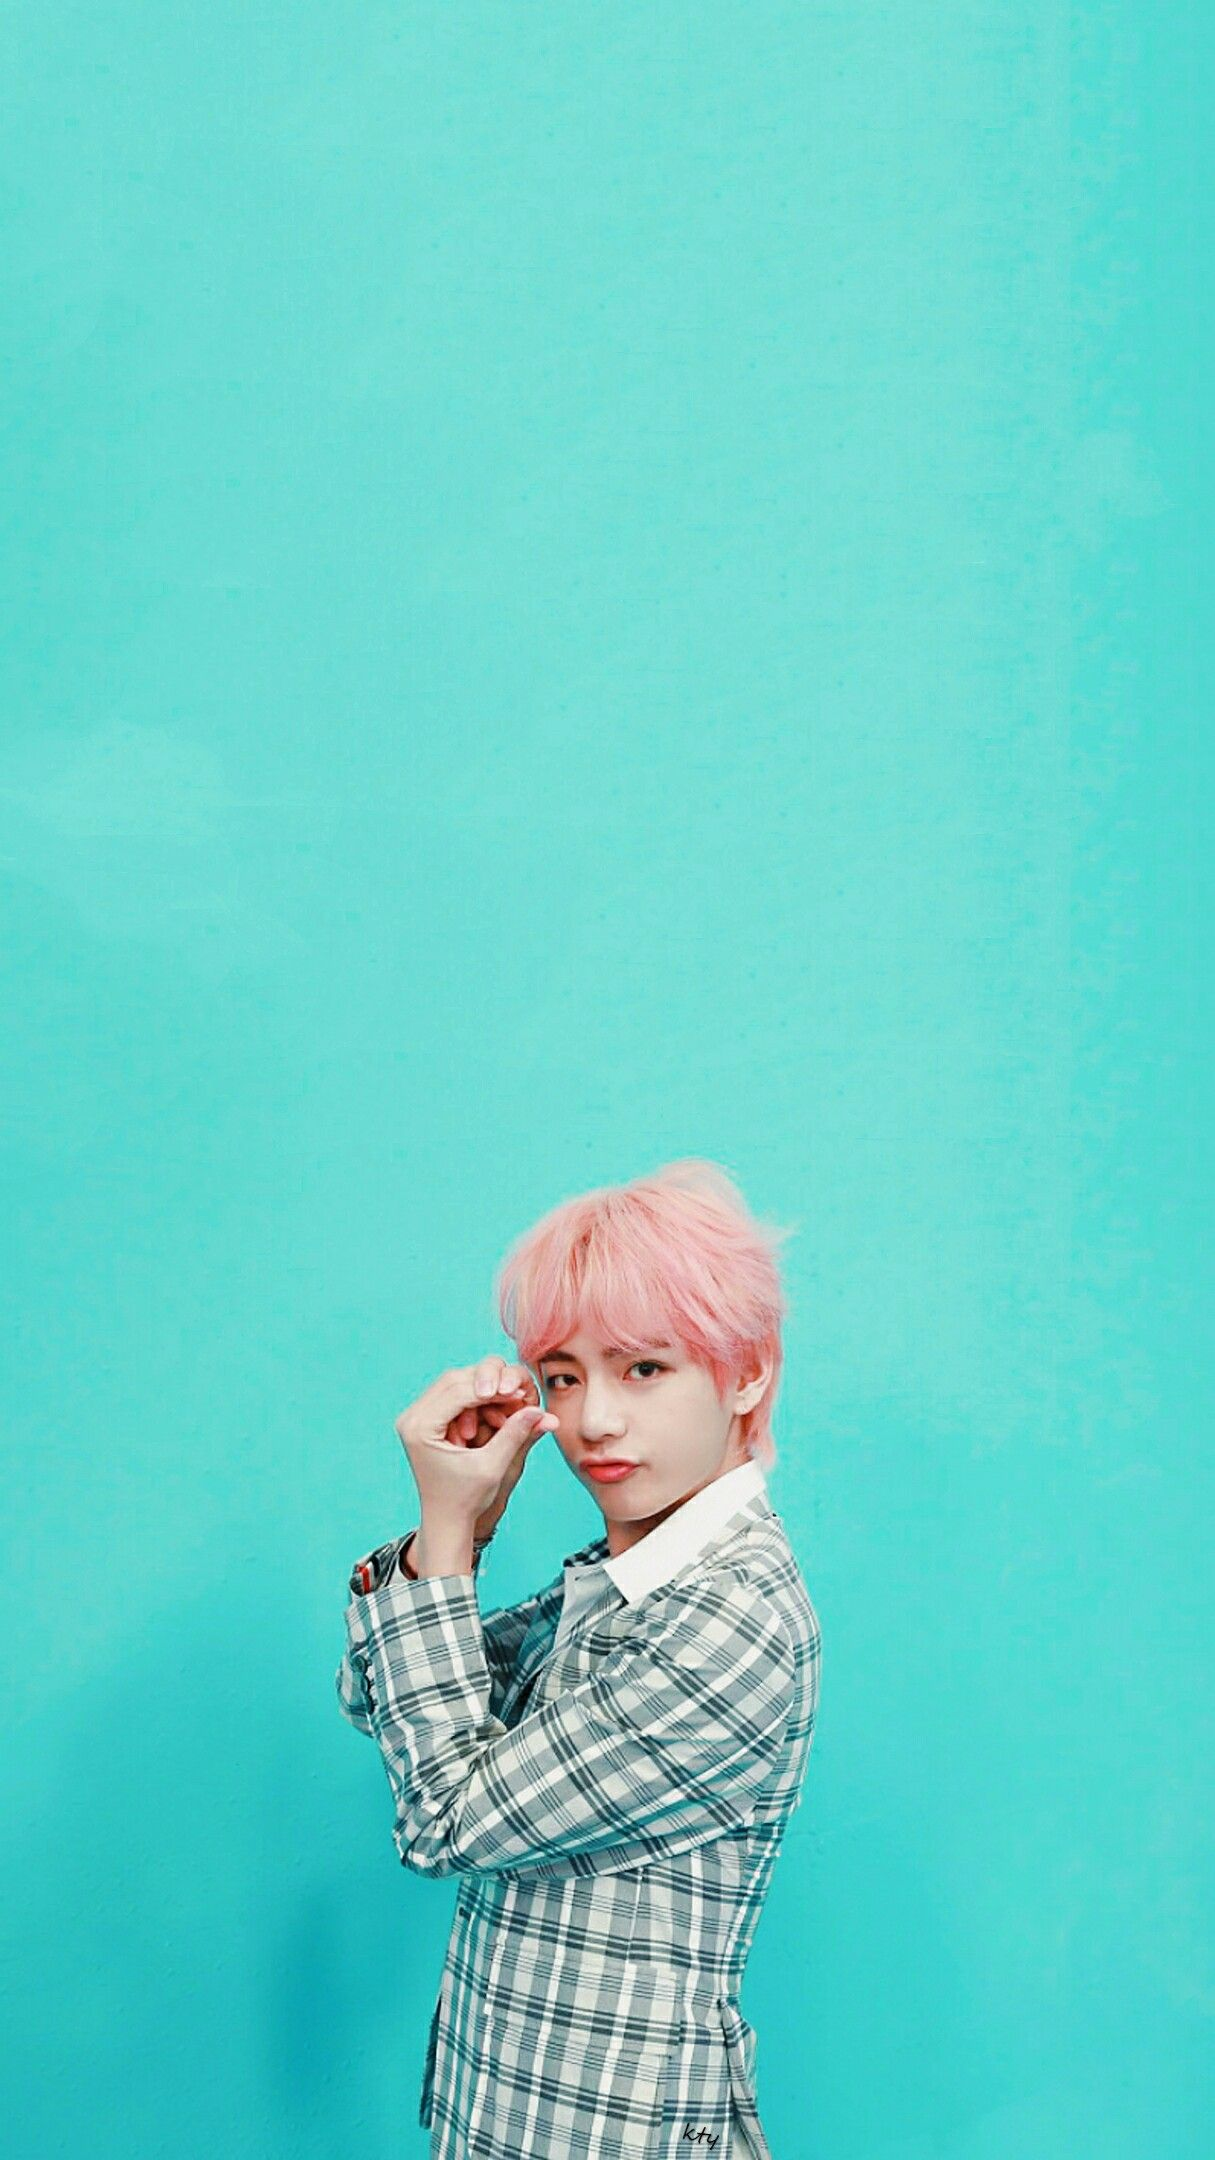 BTS EDITS | BTS WALLPAPERS | pls make sure to follow me before u save it ♡ find more on my account ♡ Pls don't Repost! ❤ #BTS #V #btswallpaper